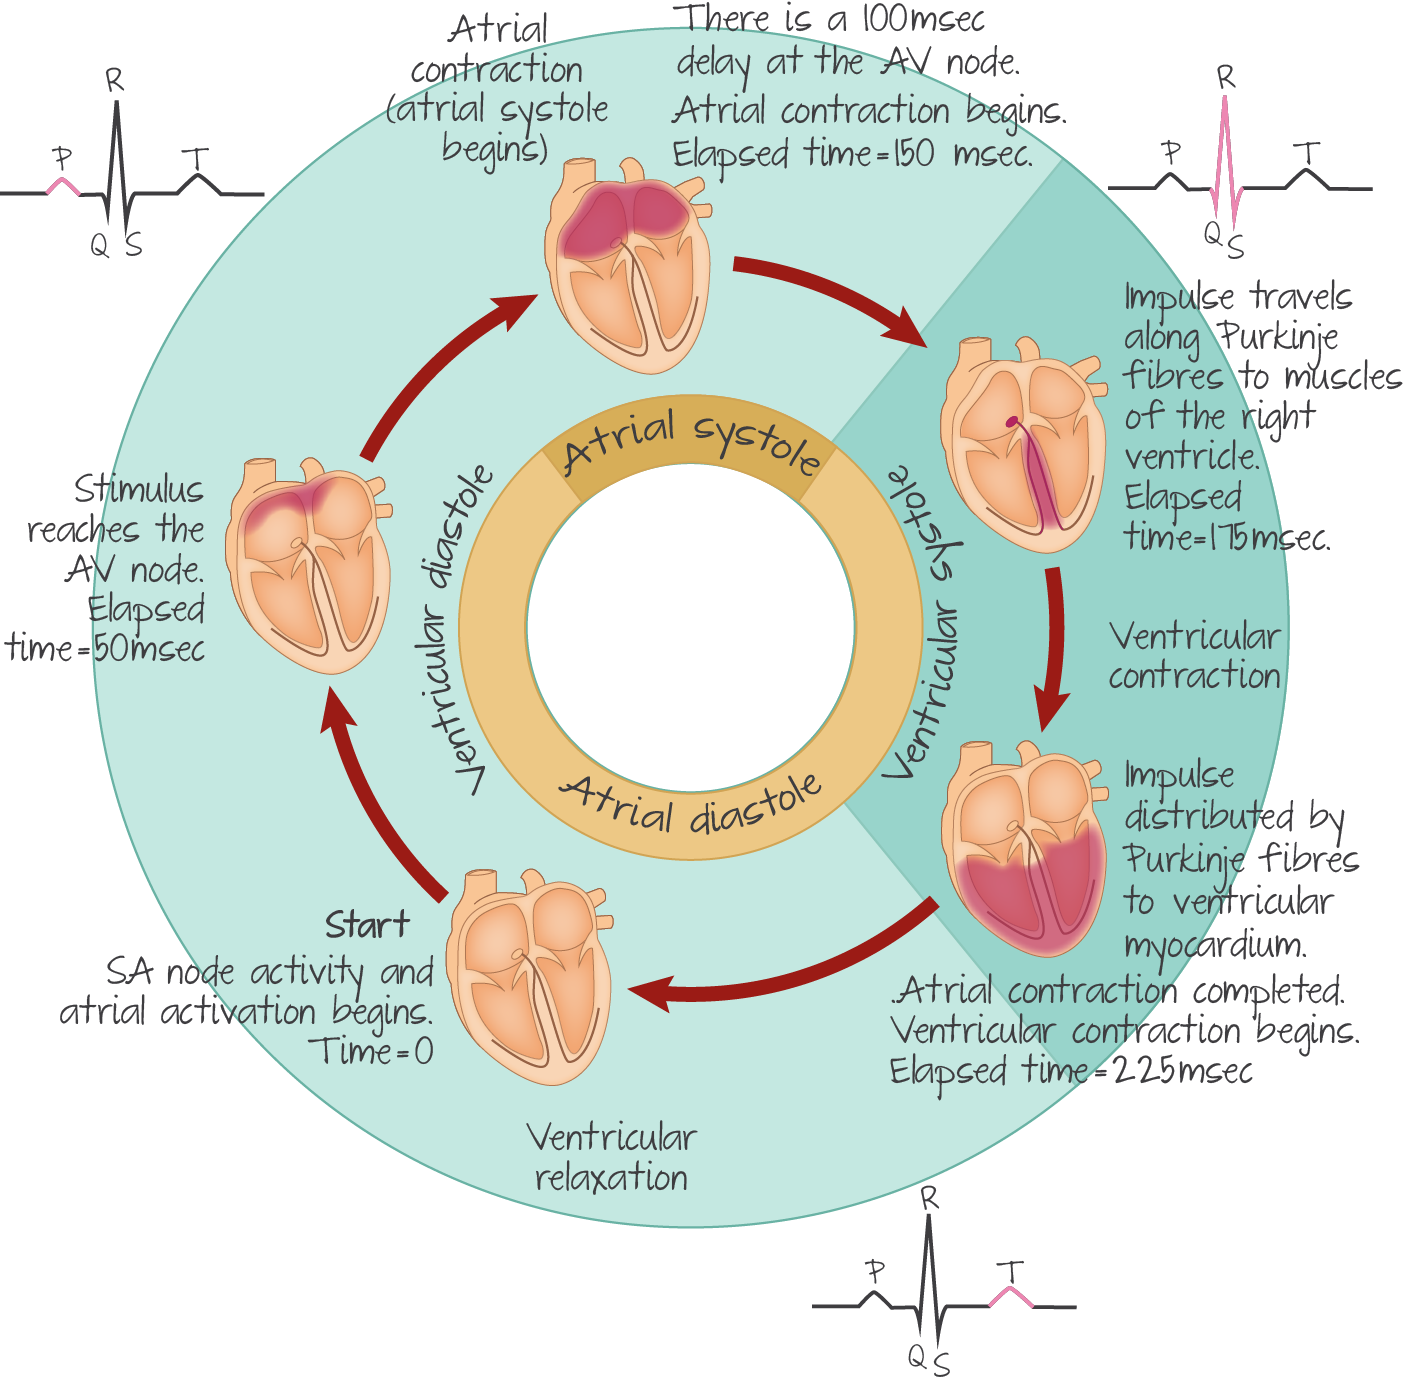 Cardiac Conduction And The Heart Cycle To Explain The